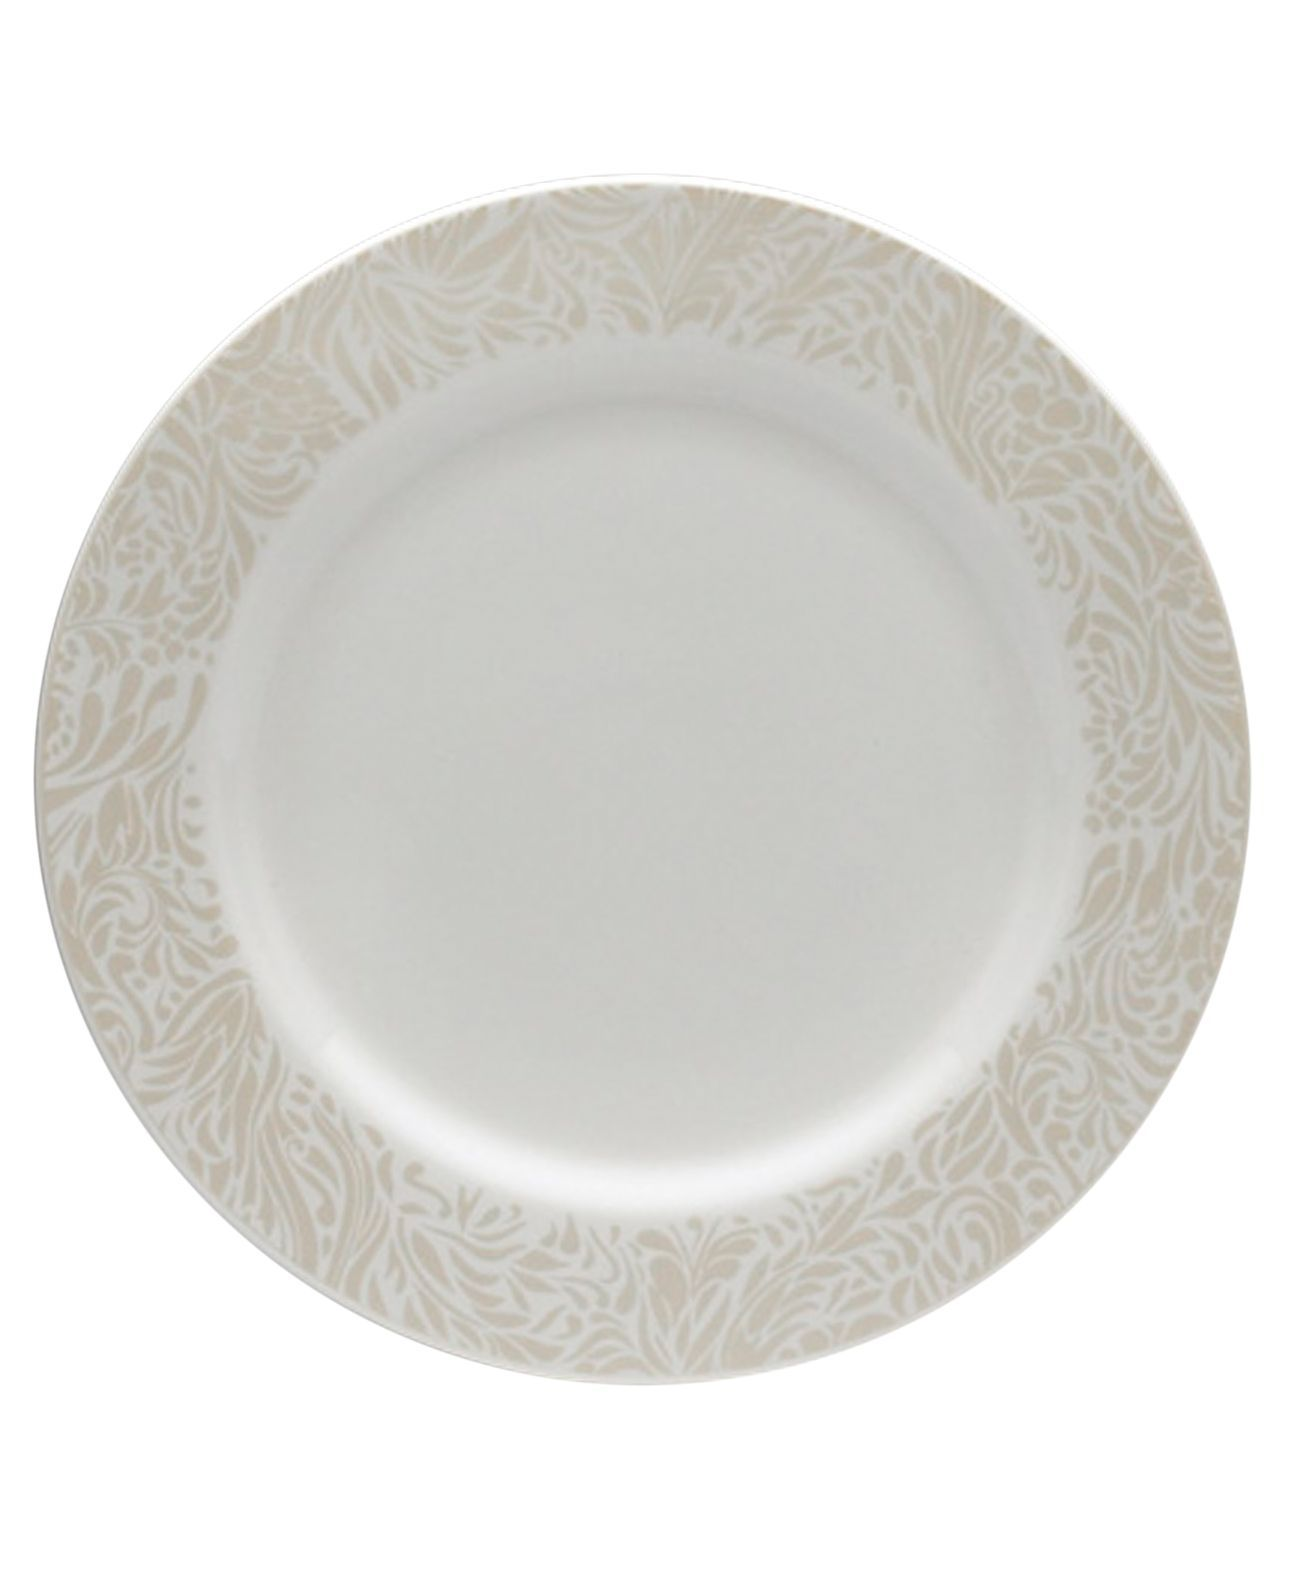 Monsoon Dinnerware Collection by Denby Lucille Gold Salad Plate  sc 1 st  Pinterest & Monsoon Dinnerware Collection by Denby Lucille Gold Salad Plate ...